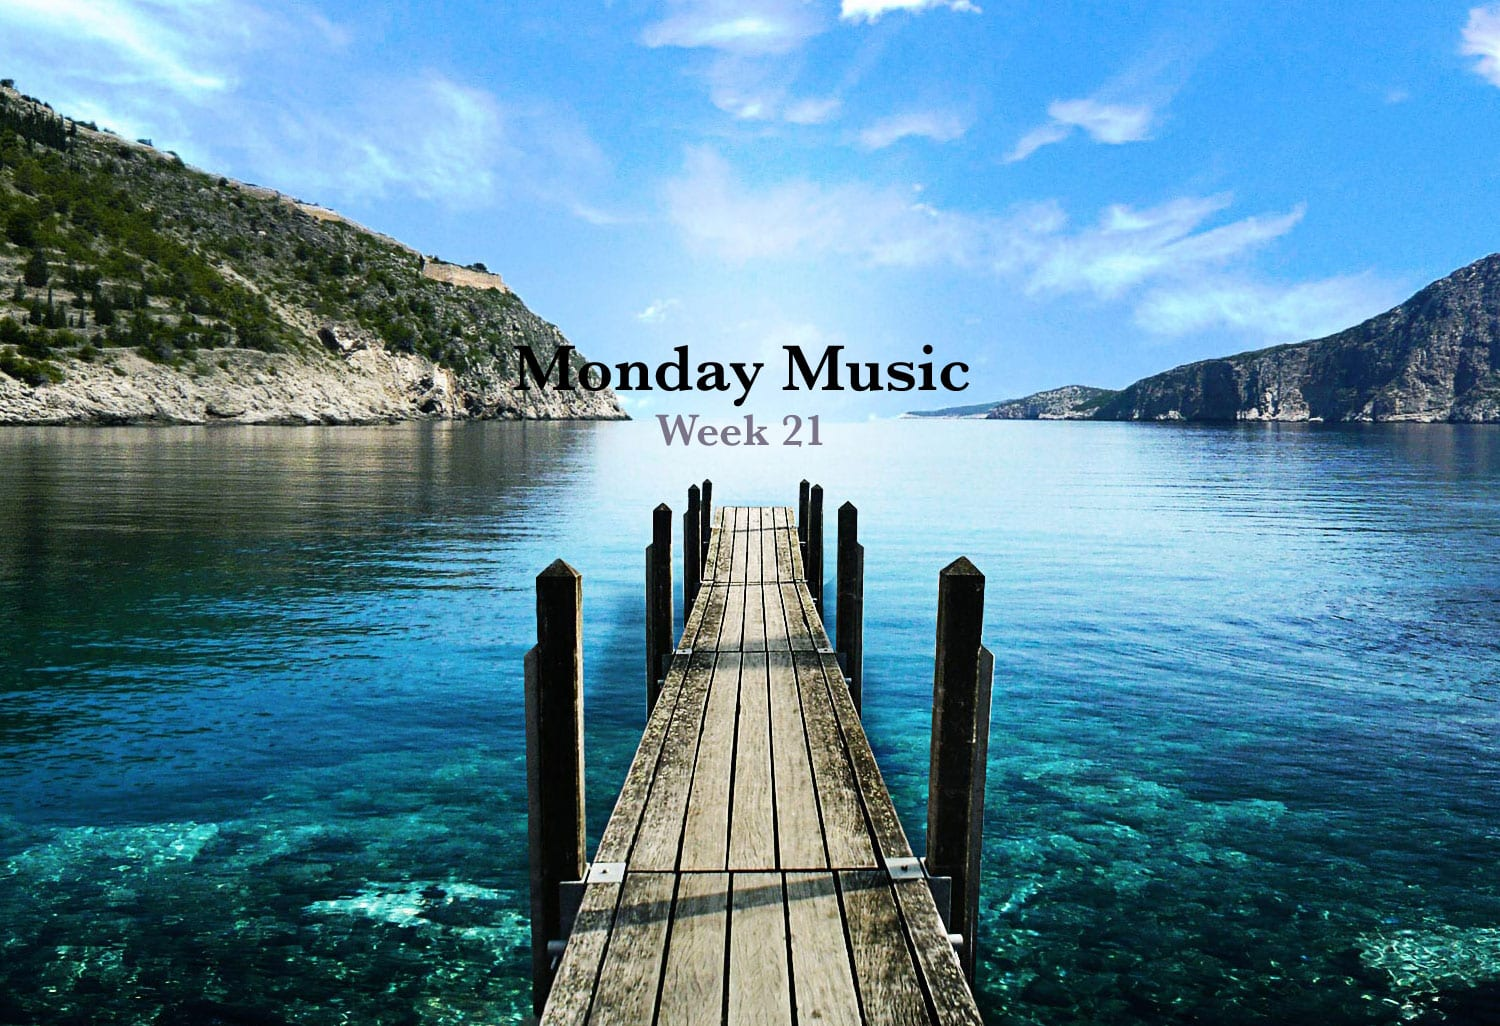 Monday Music Week 21